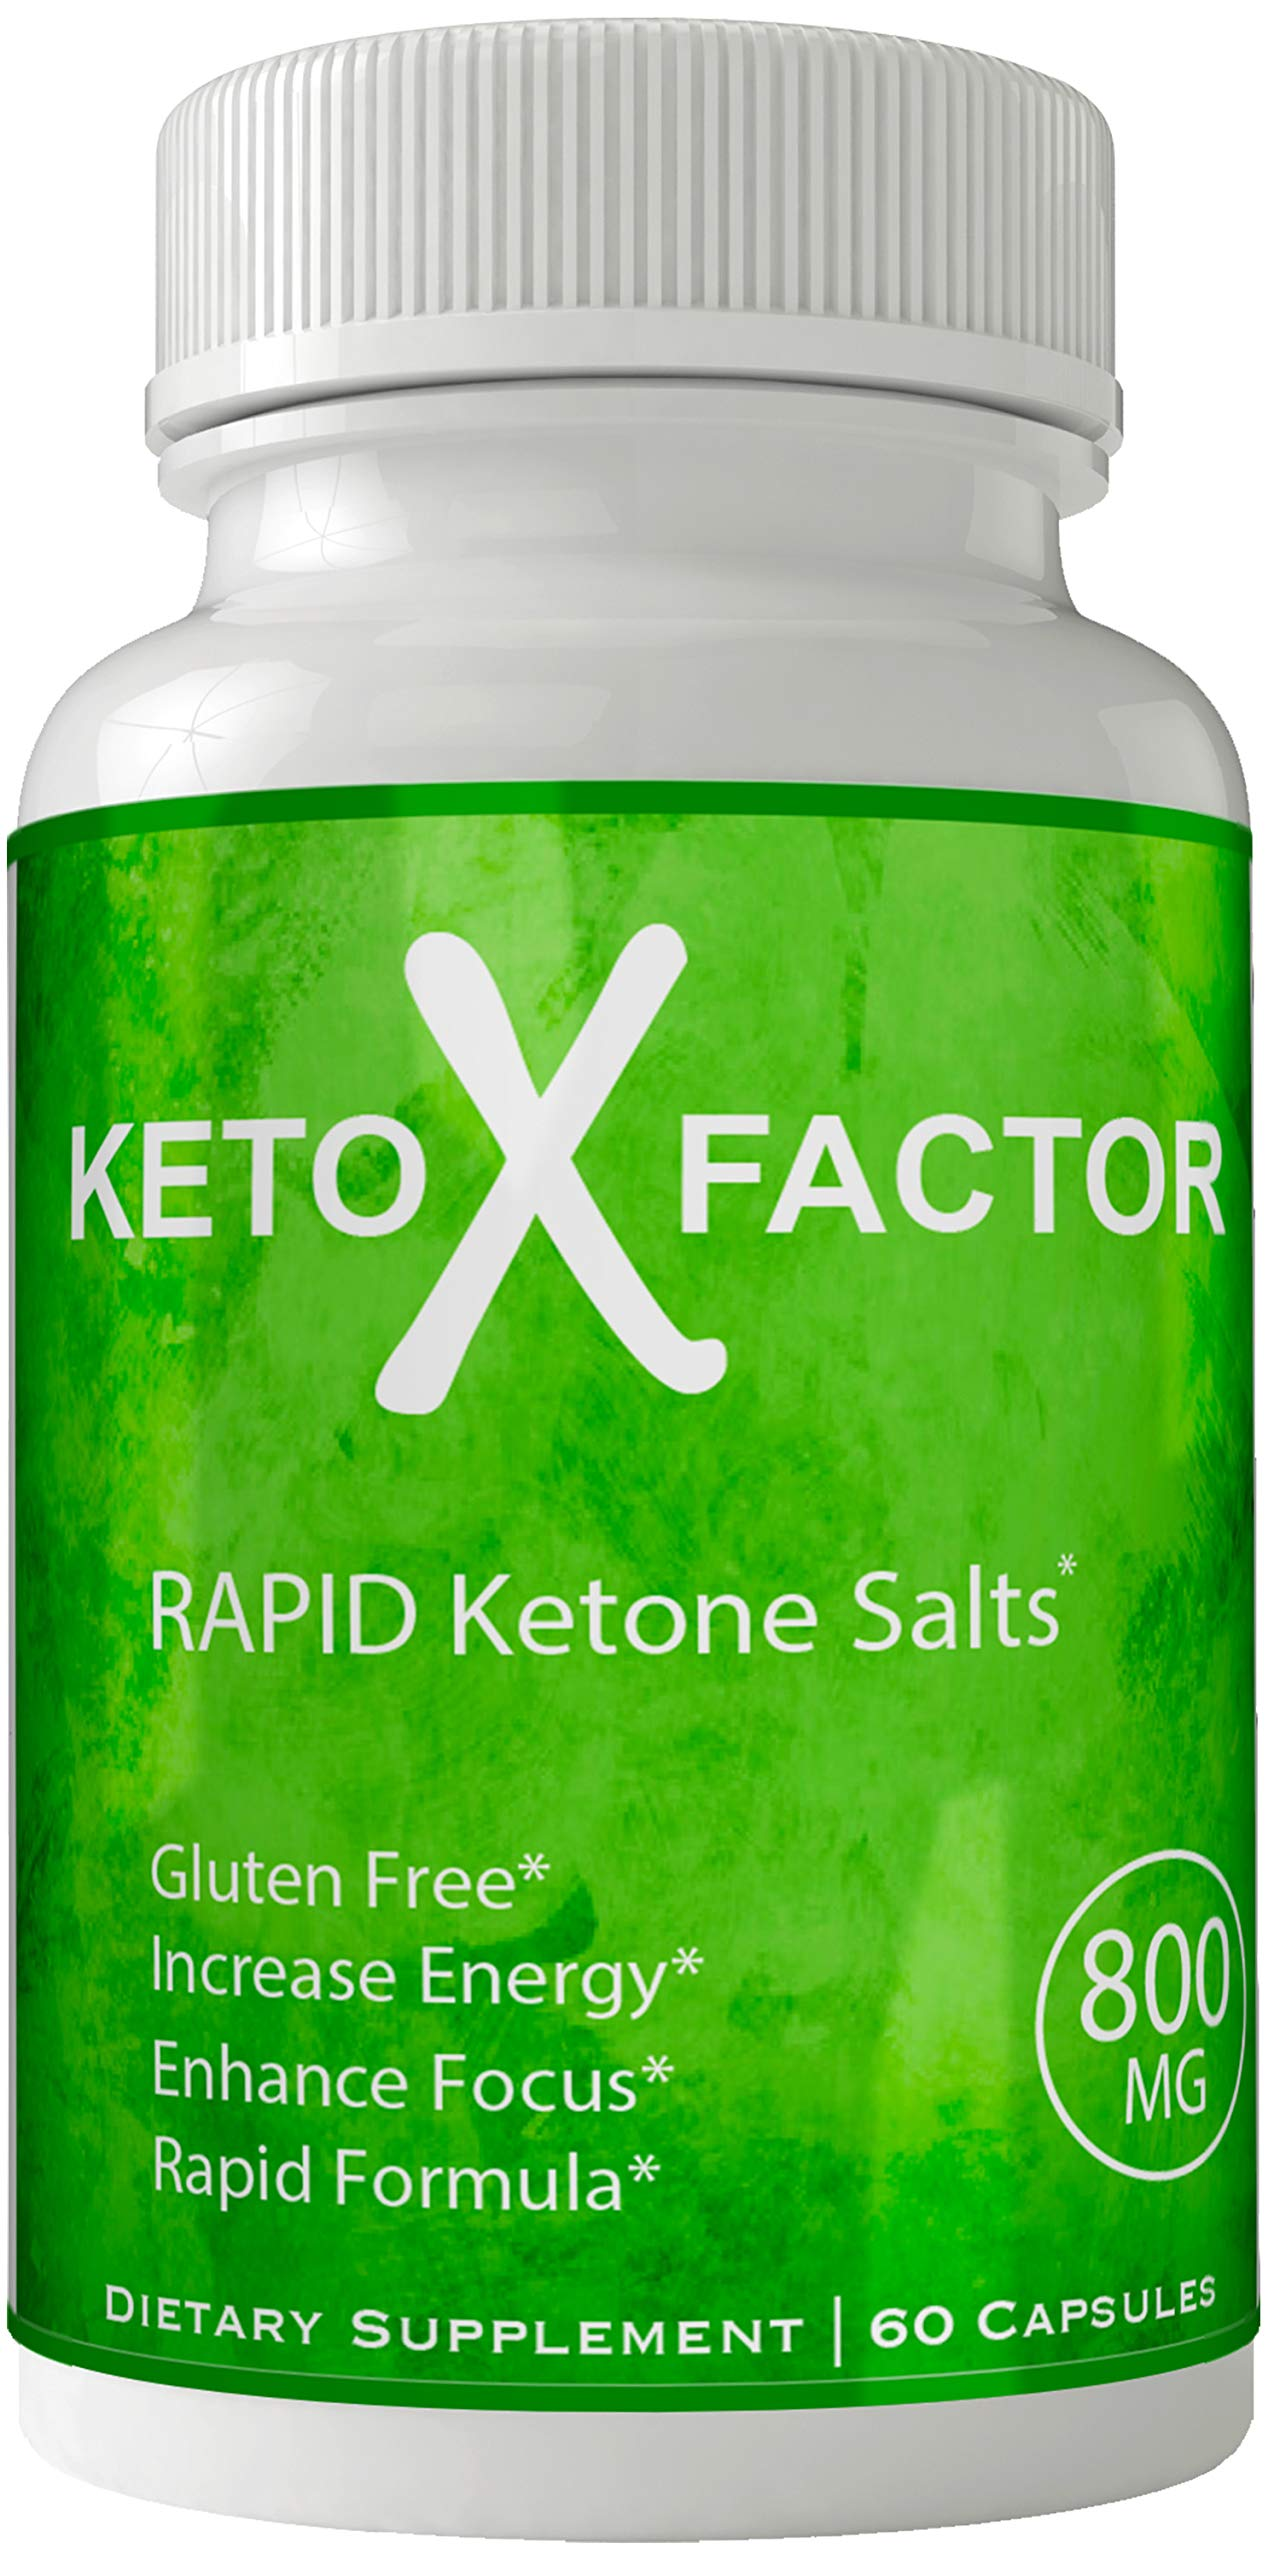 Keto X Factor Weight Loss Supplement - Weightloss Diet Pills Products Keto Trim BHB Salts | Thermogenic Tone Fat Loss Blend Weigh Pills for Women Men Natural Weight Loss Original Boost Your Mojo by nutra4health LLC